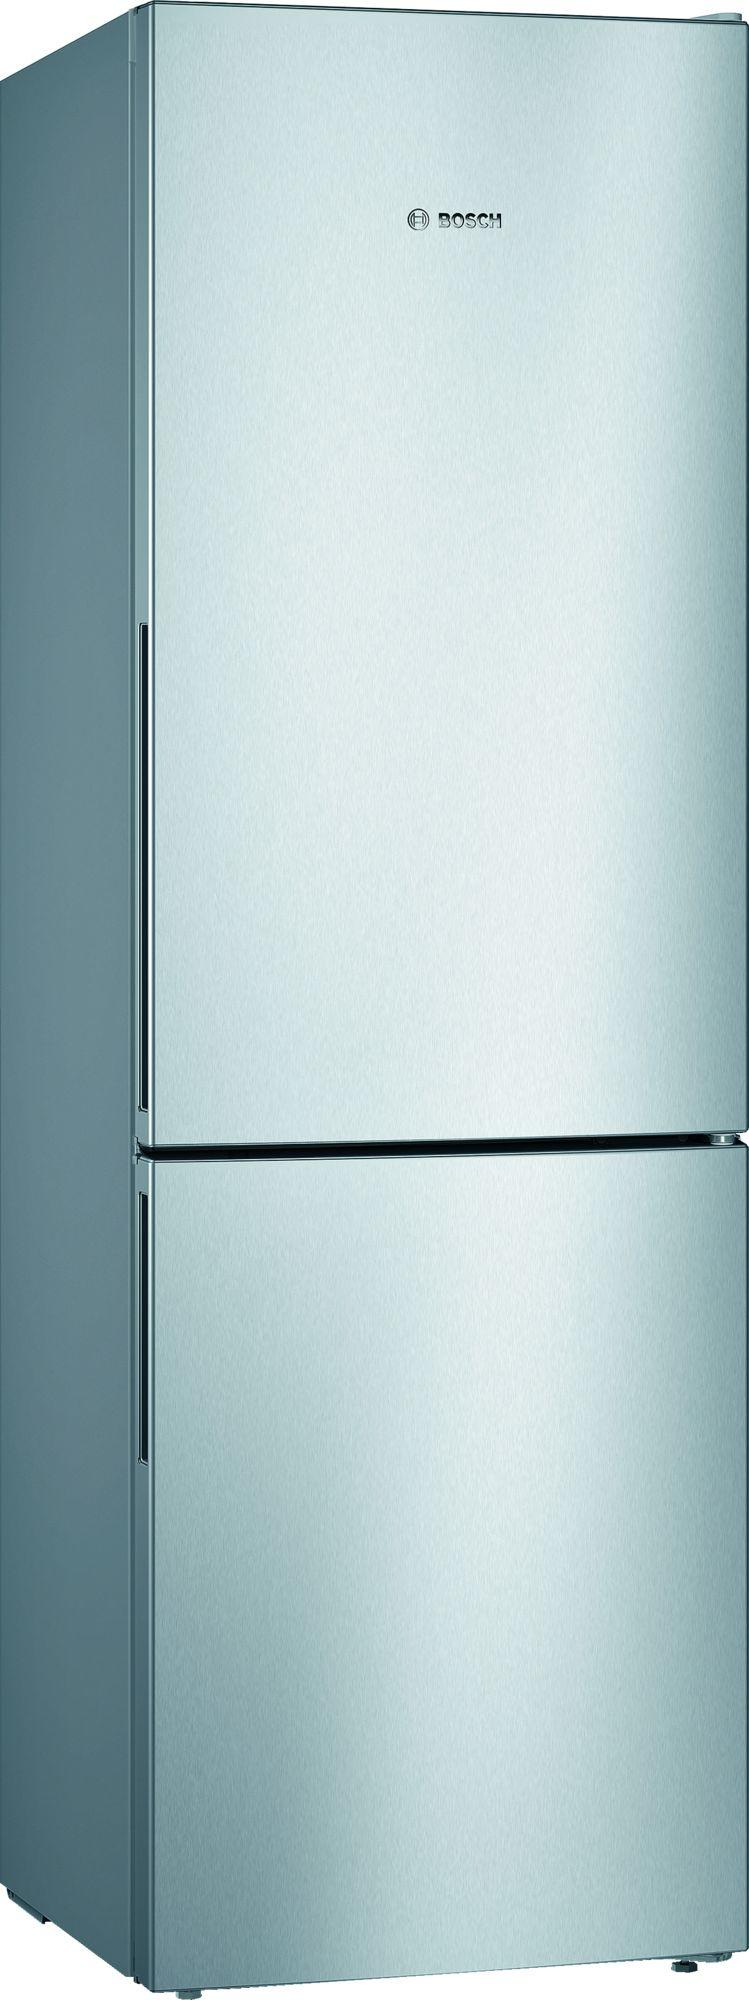 Image of Serie 4 KGV36VLEAG 308 Litre A++ Low Frost Fridge Freezer | Silver Inox